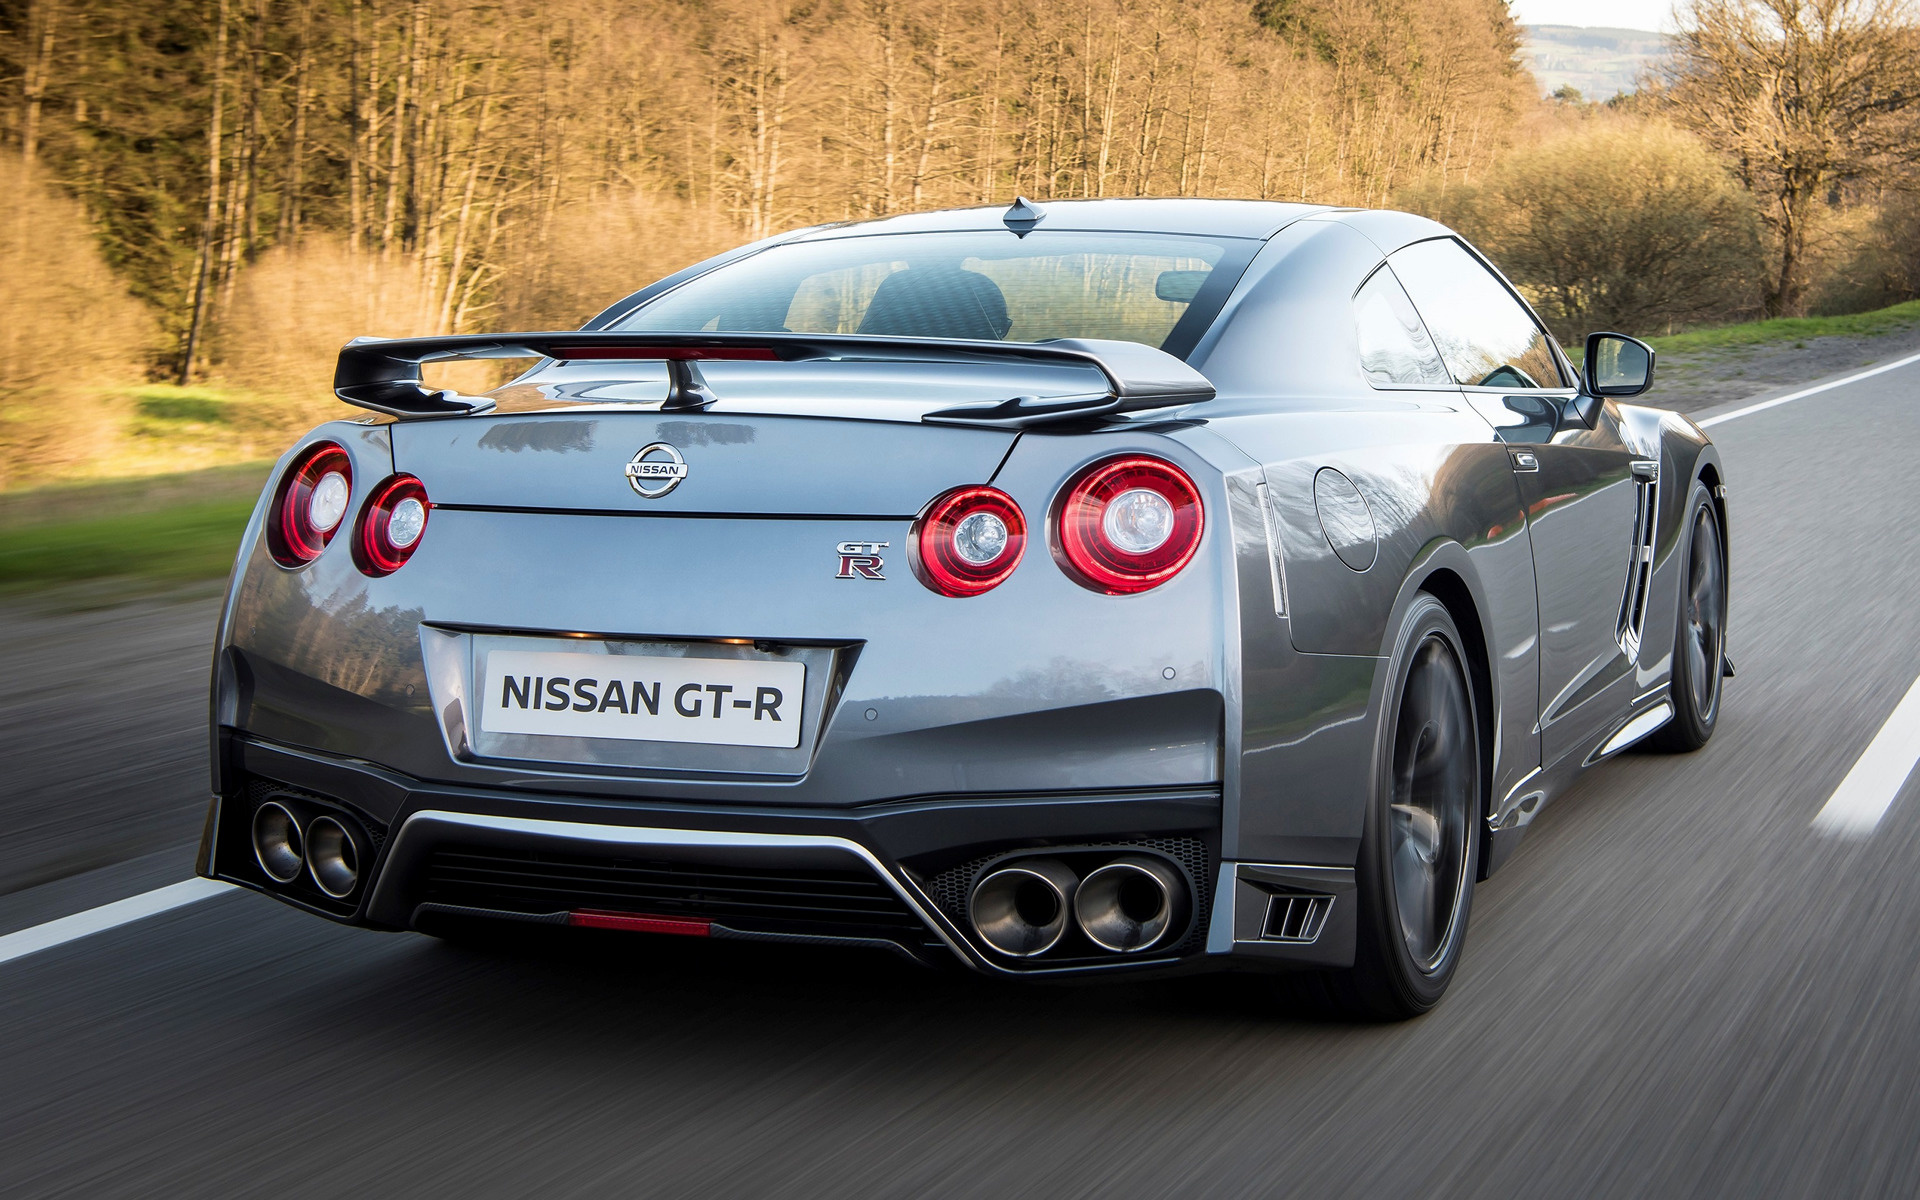 Nissan Gt R 2017 Us Wallpapers And Hd Images: 2016 Nissan GT-R - Wallpapers And HD Images